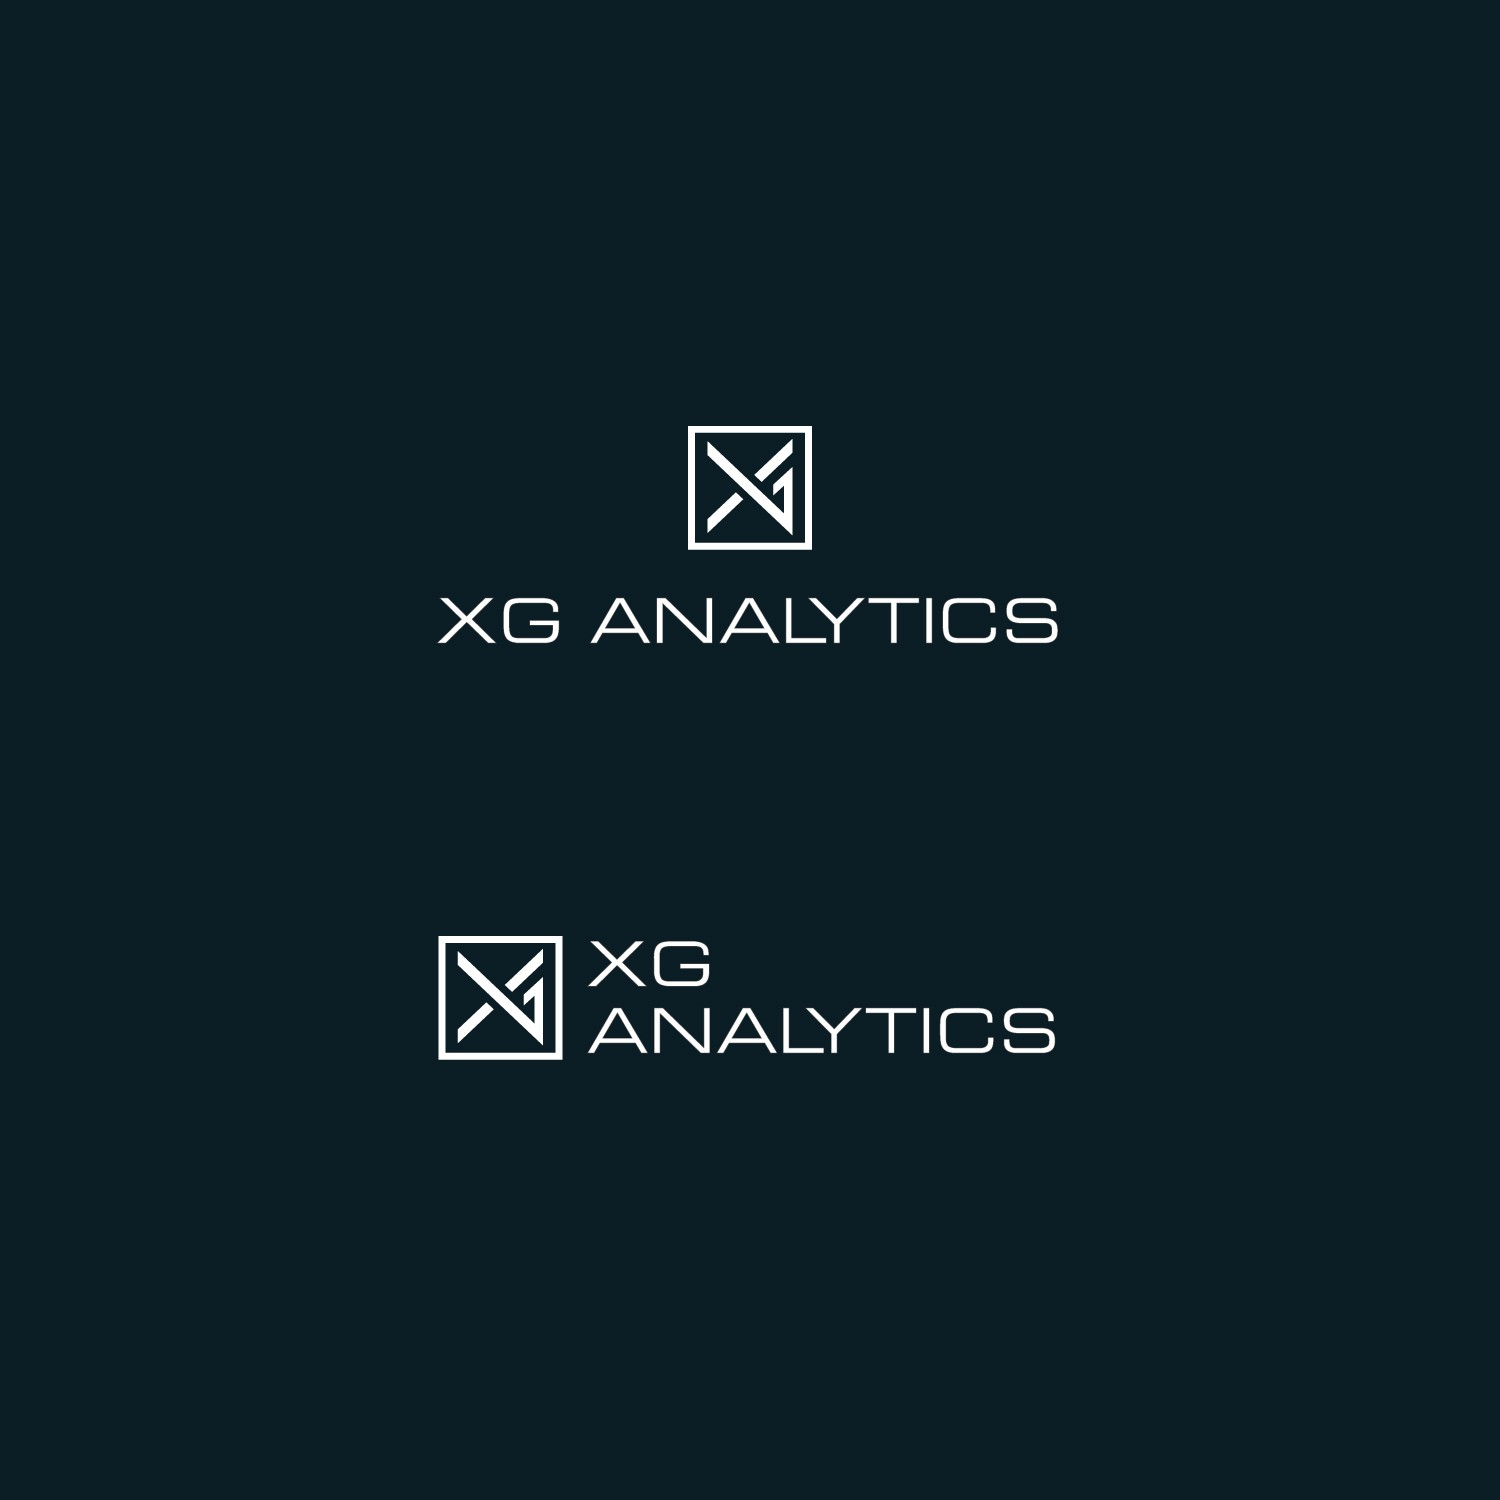 Data analytics company looking for a logo to appeal to businesses wanting to utilize their company data